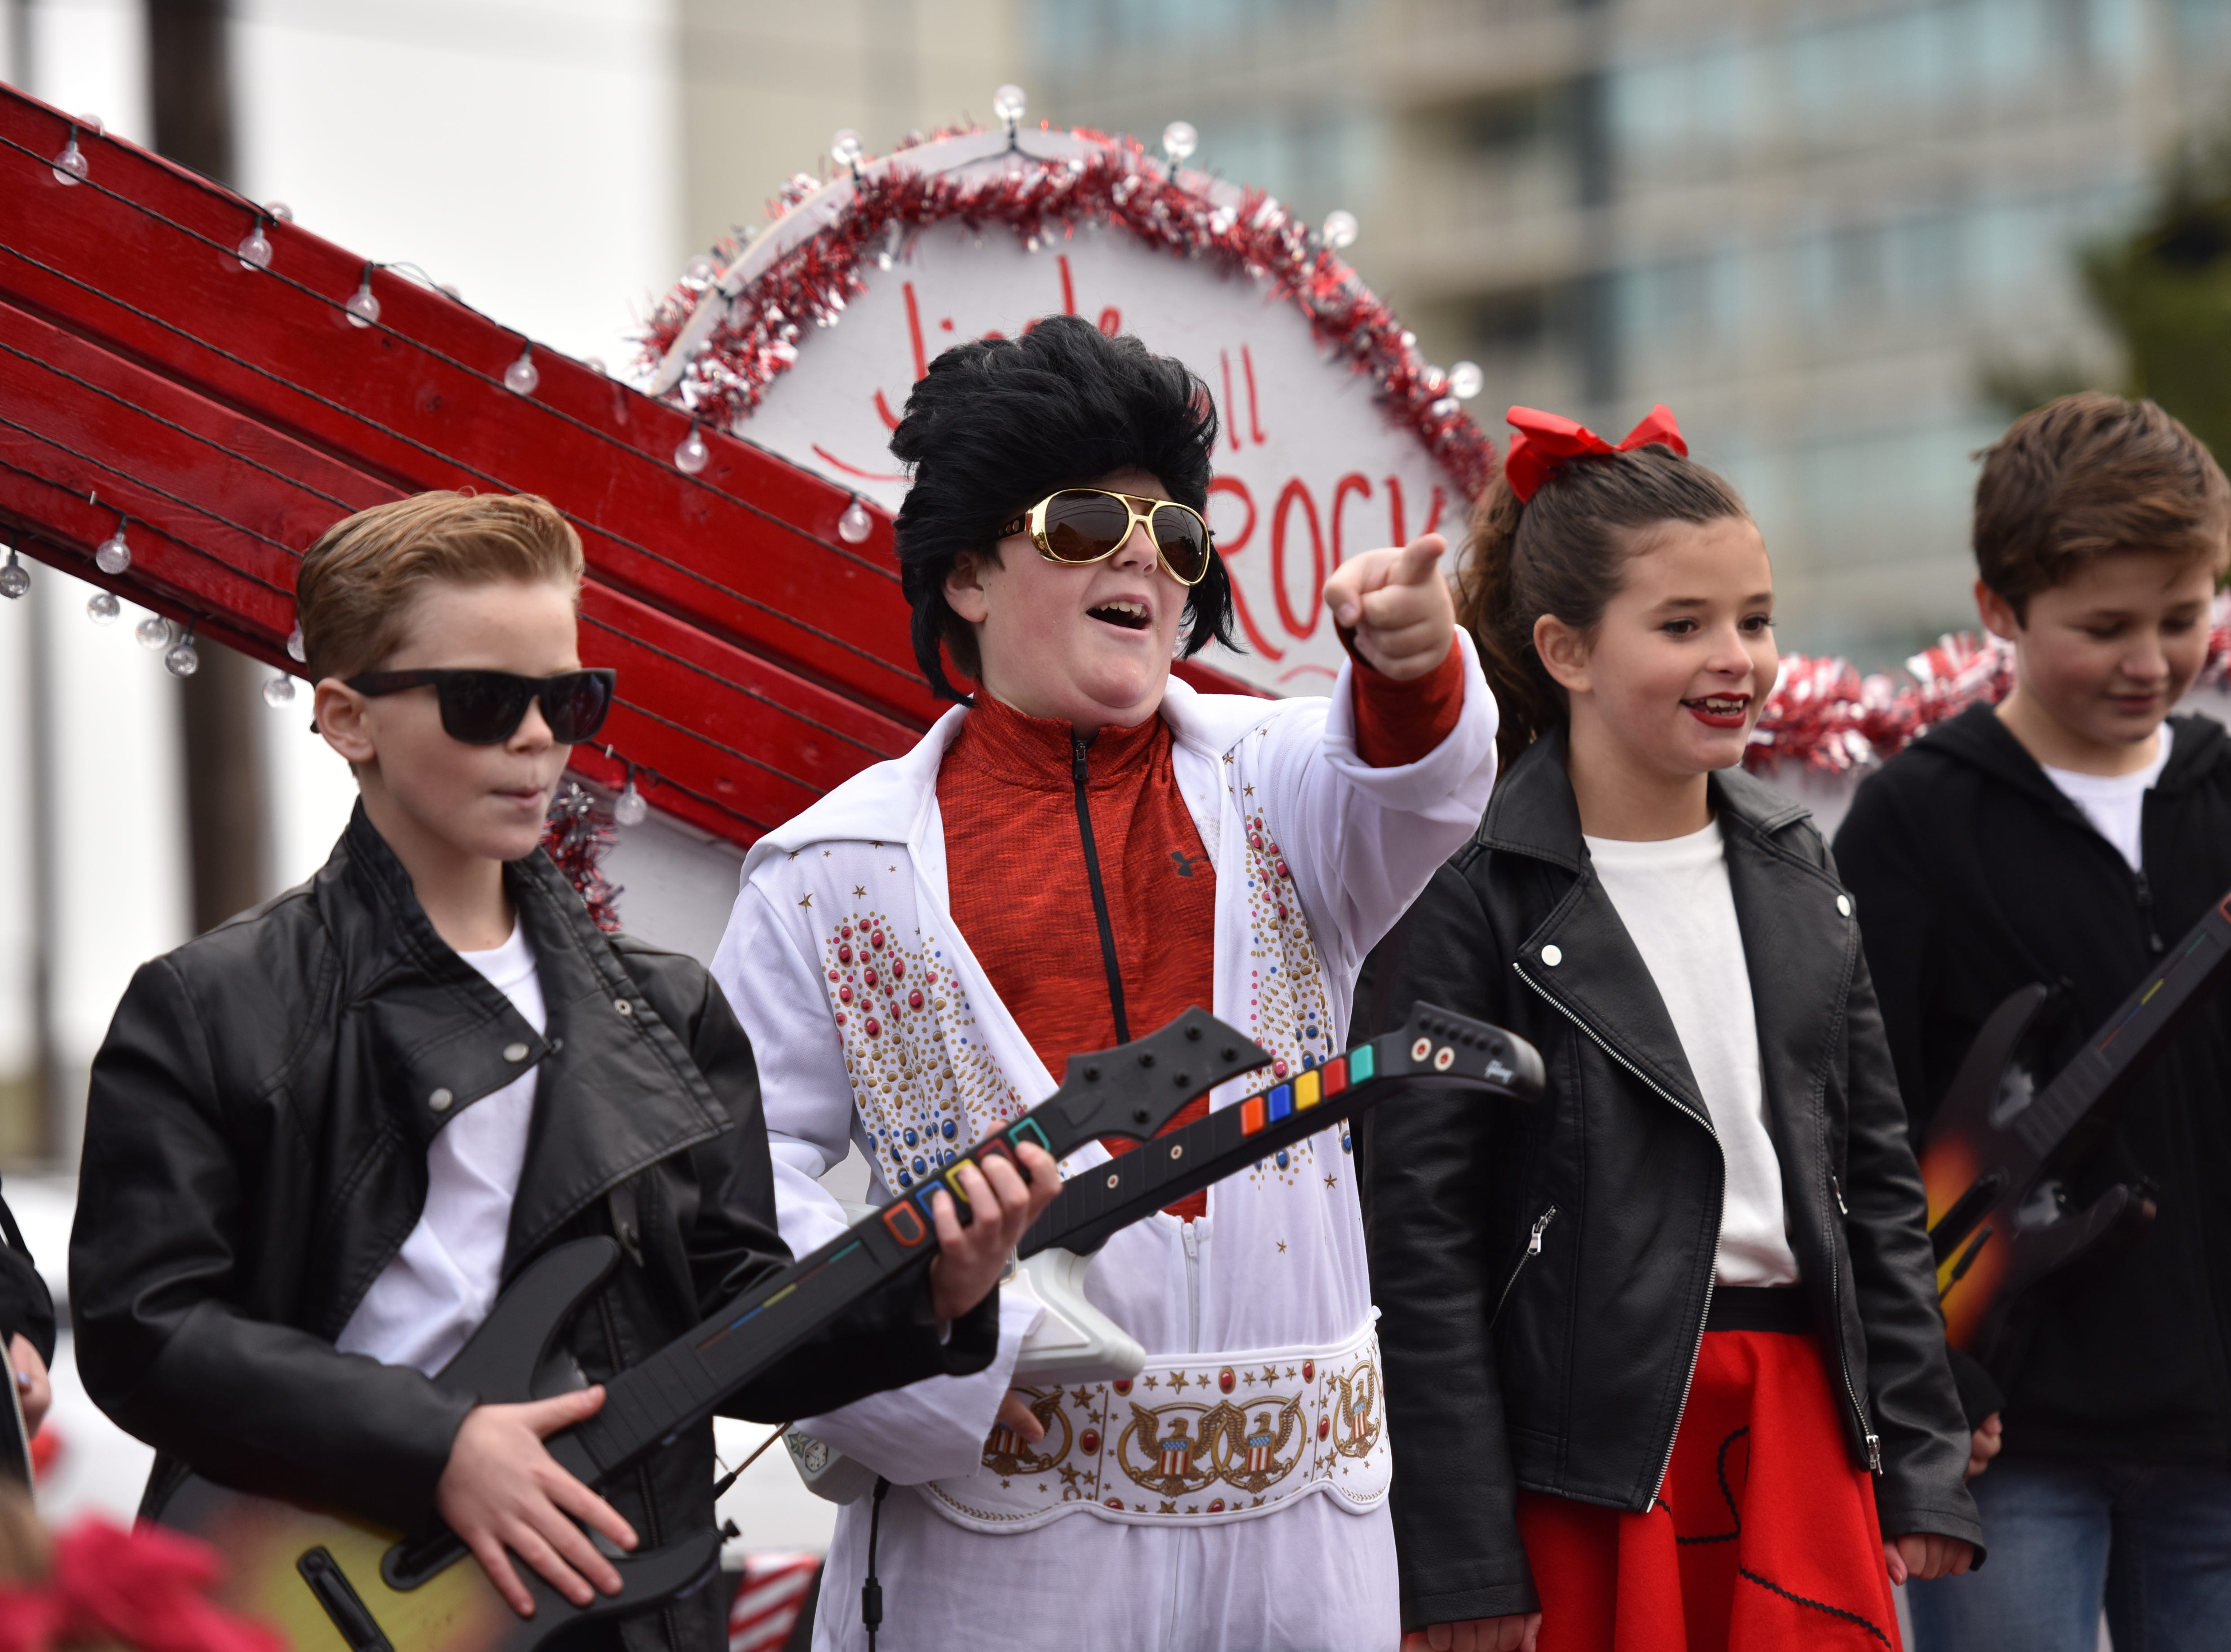 Worcester Prep students caroling at the Ocean City Christmas parade.